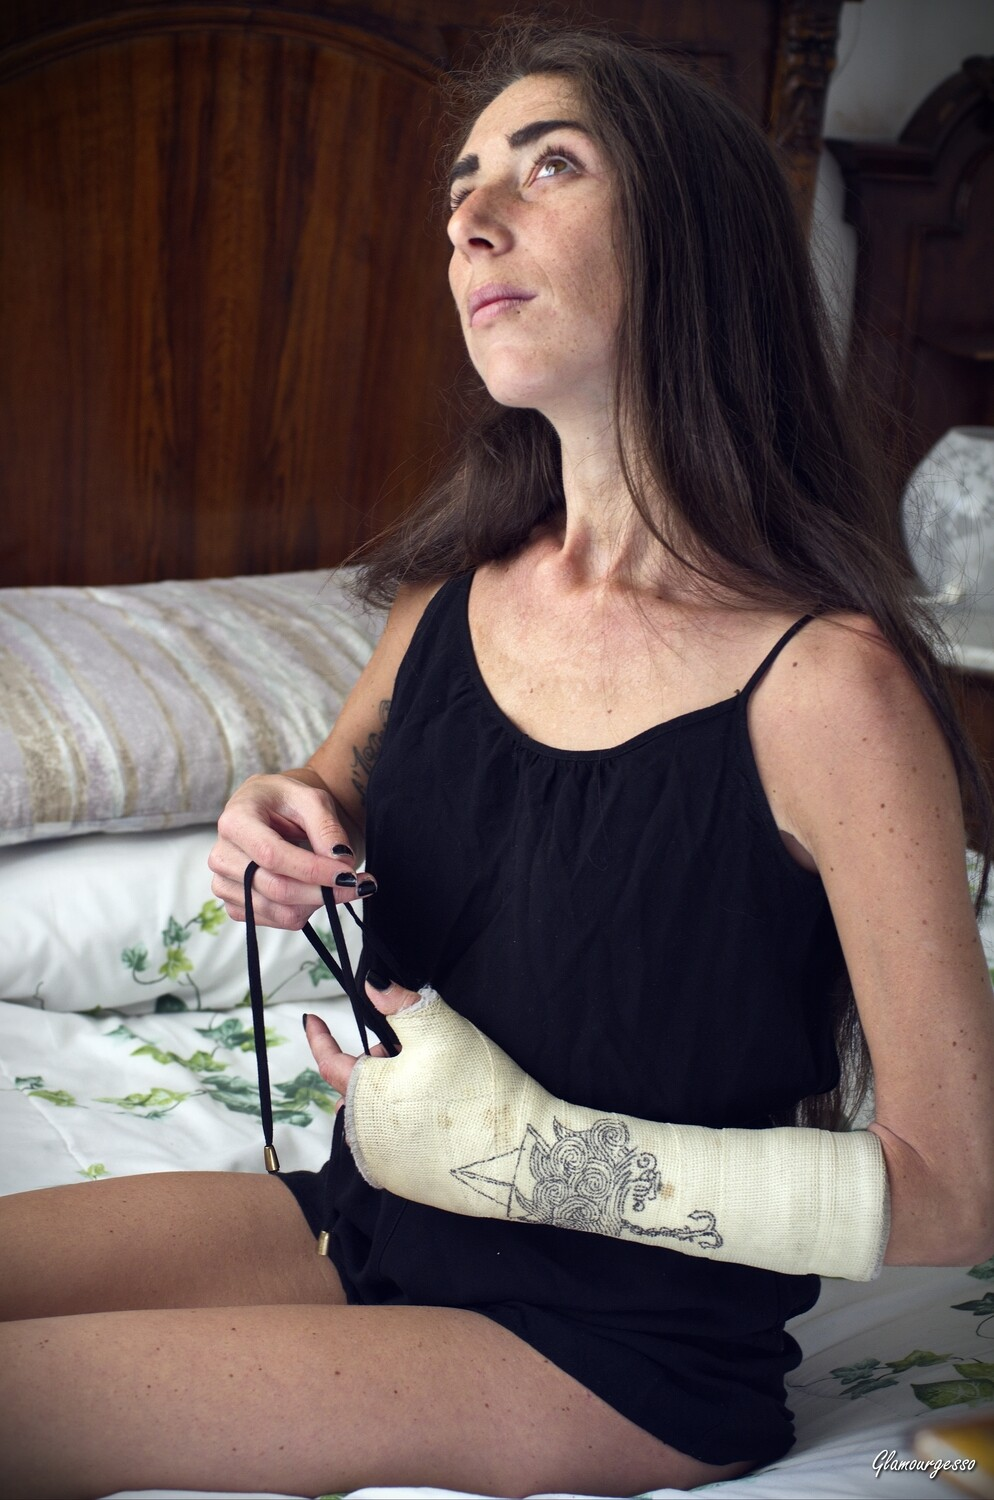 Italian amateur model Penelope shows you her life in her medical SATS, after breaking her left scaphoid dancing in september 2017.  You can see her waking up in sensual nightwear and completely dressing and making up, beeing able to use only one hand